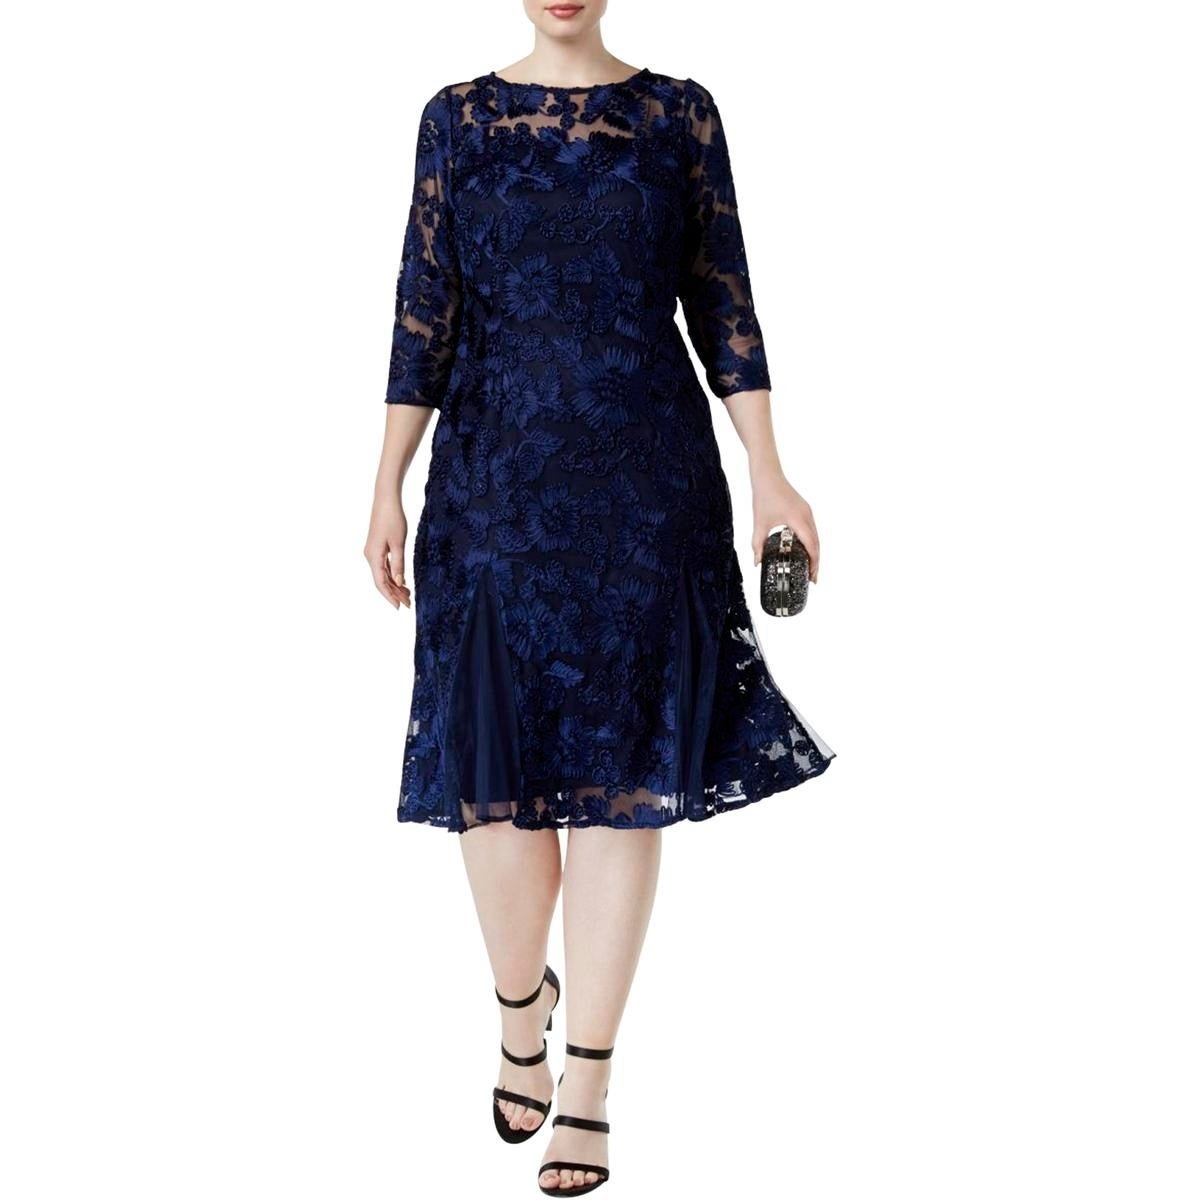 68f09c238f17a7 Shop Alex Evenings Womens Plus Special Occasion Dress Embroidered  Knee-Length - Free Shipping Today - Overstock - 23403983 - 24W